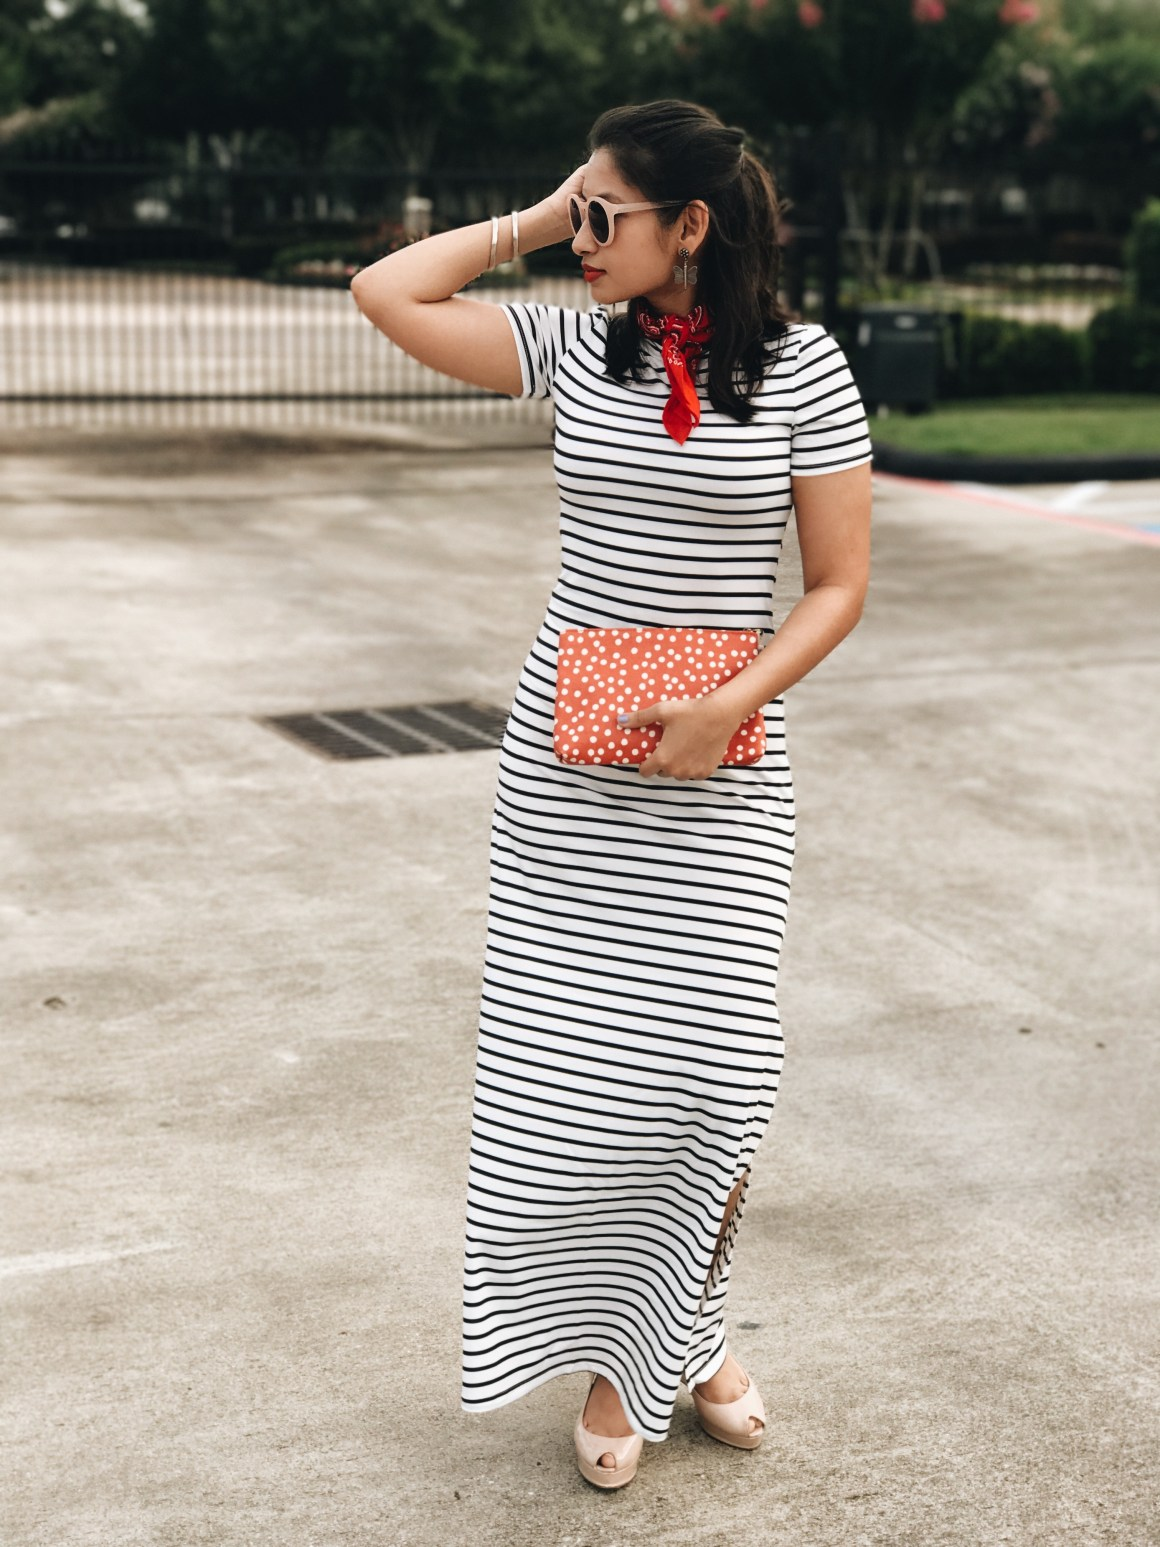 Casual Chic in Stripes